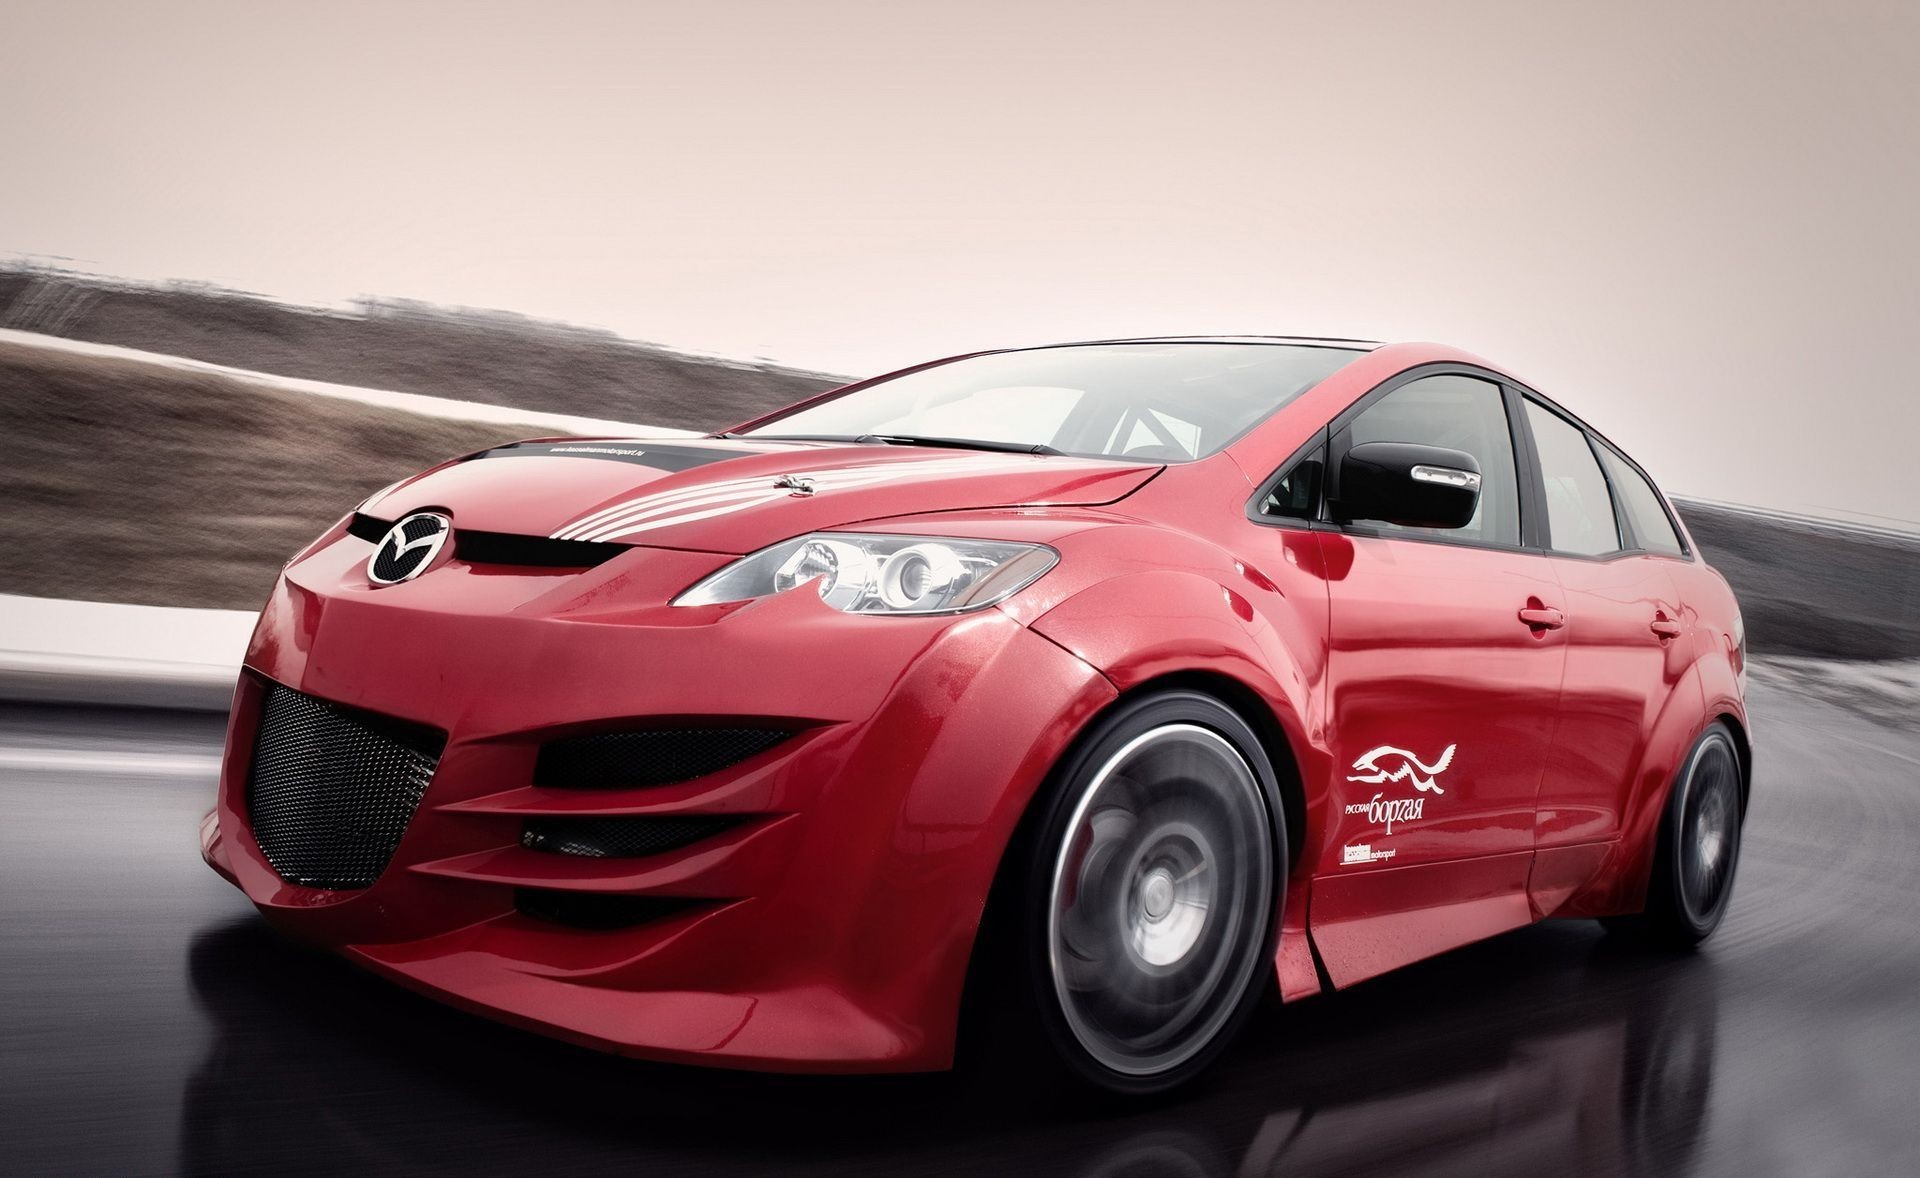 wall Mazda red cars HD Wallpaper